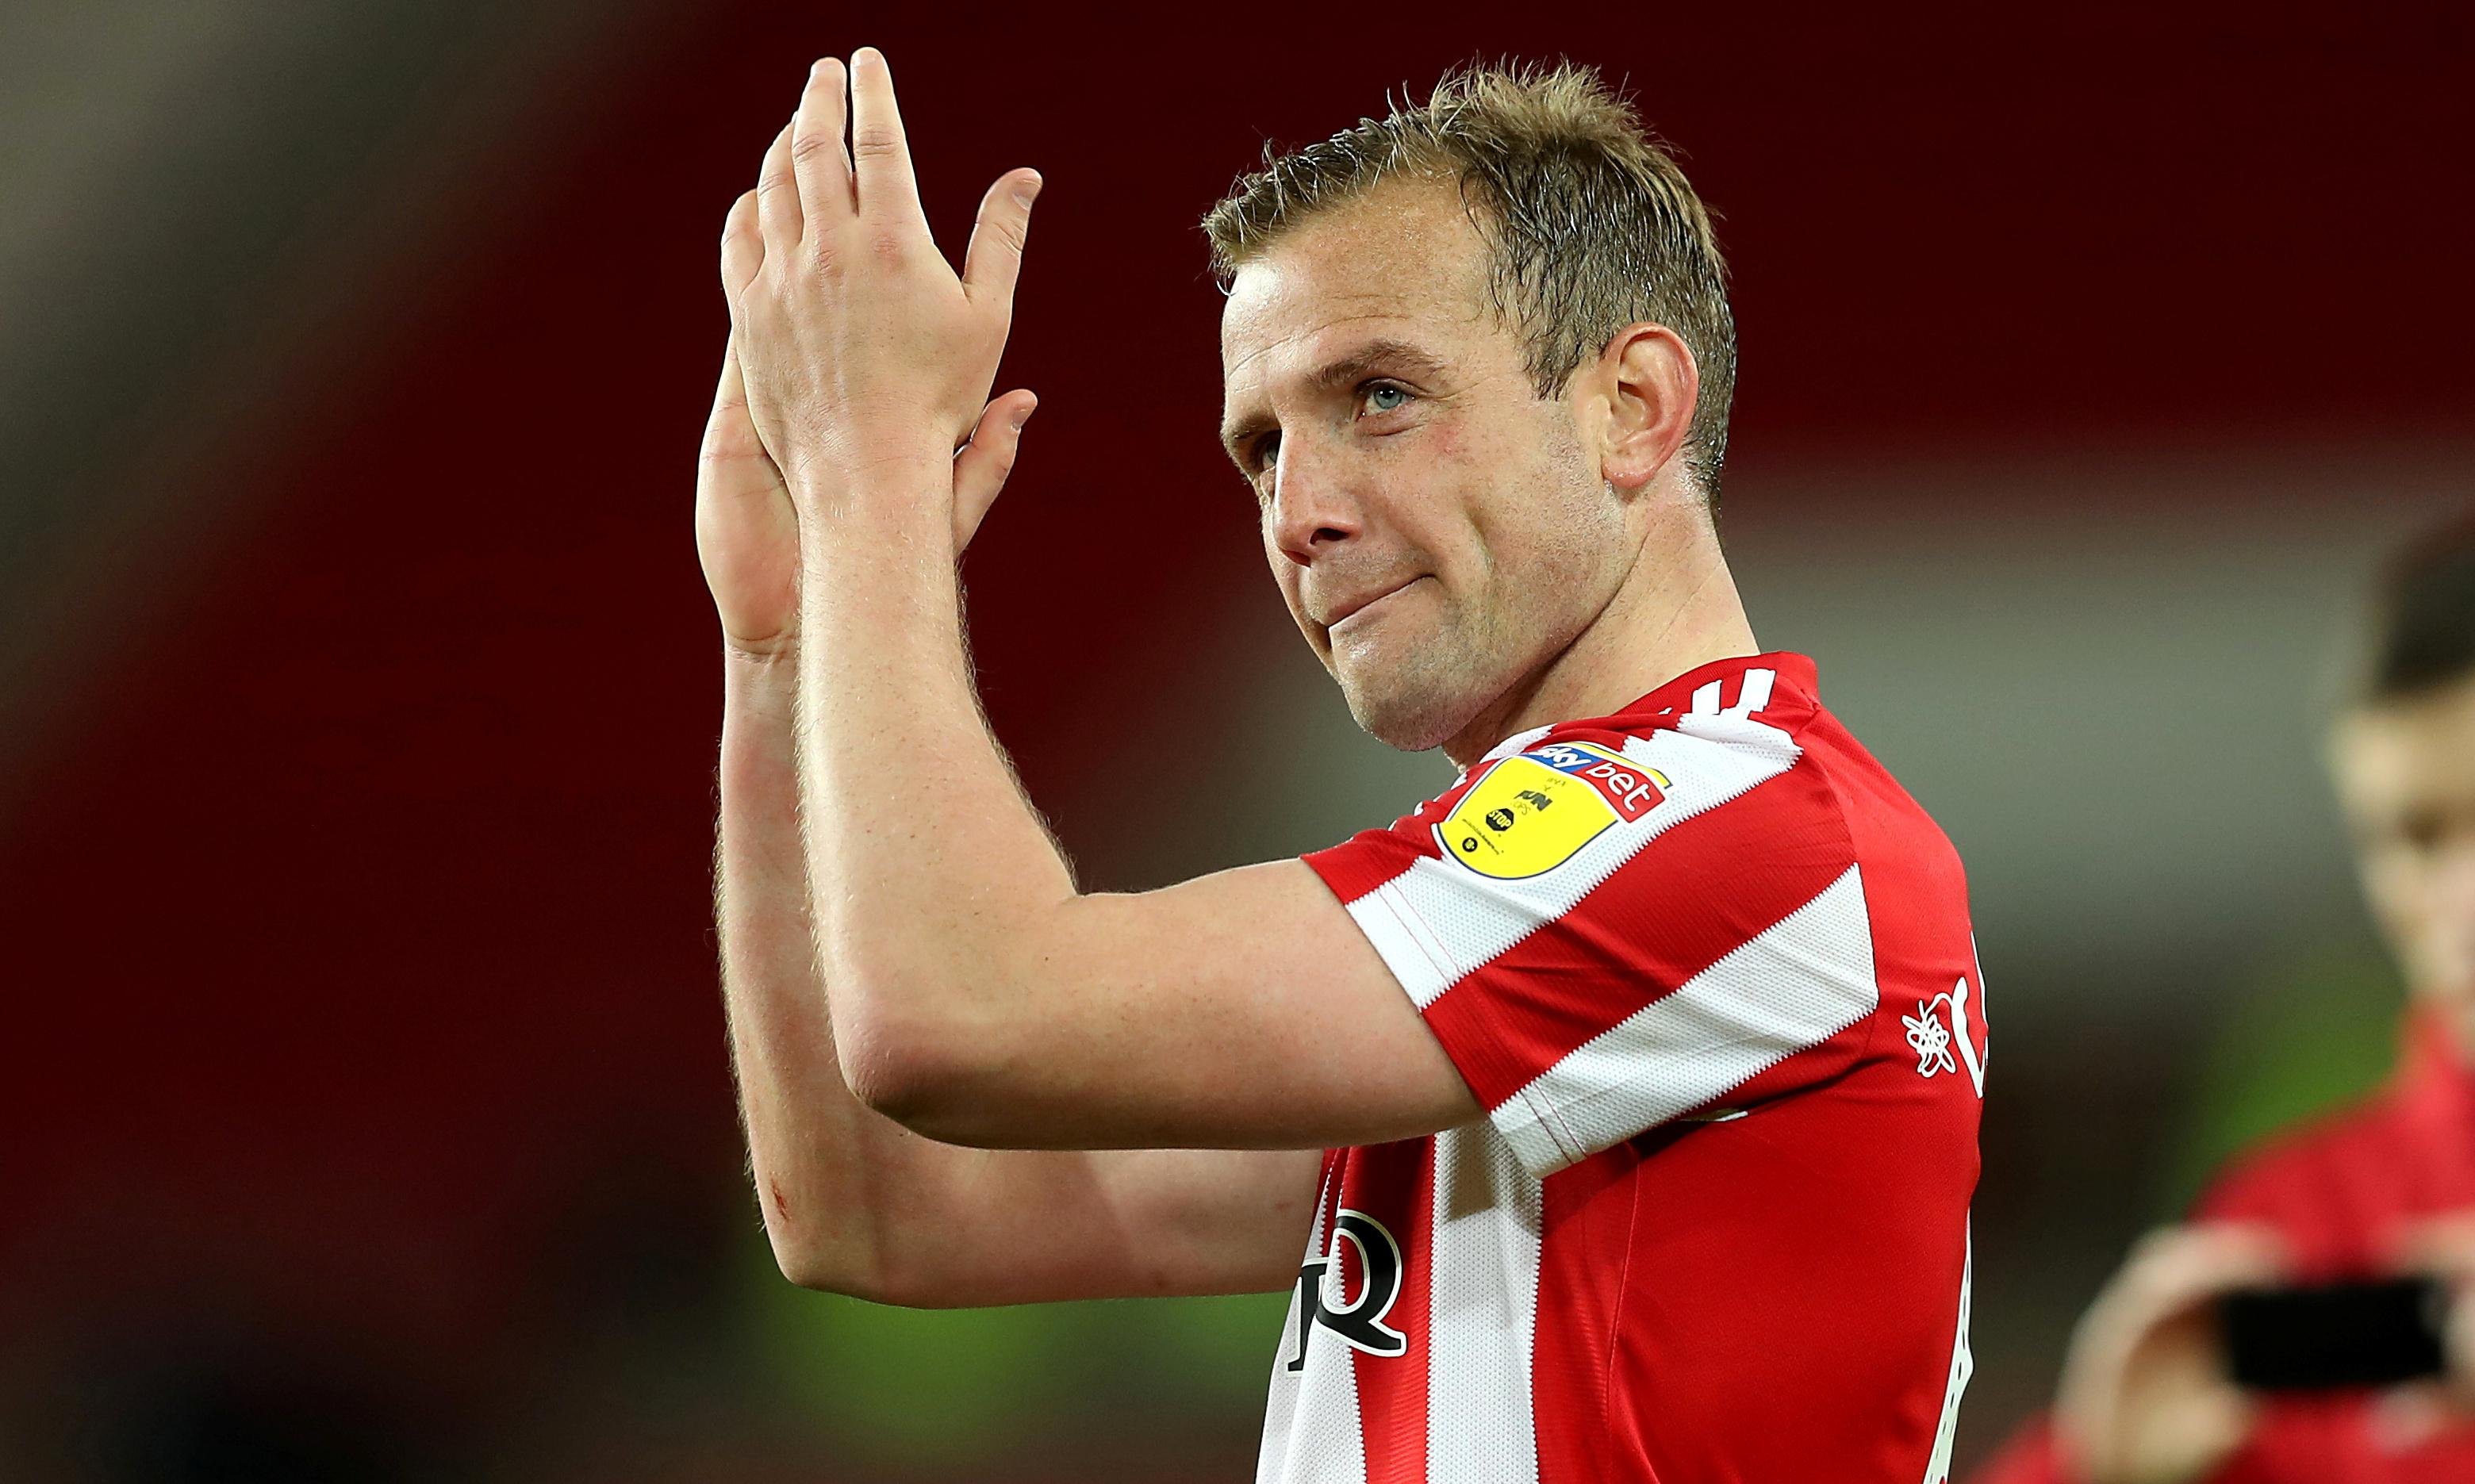 Lee Cattermole: 'There were two years when I shouldn't have been on the pitch'